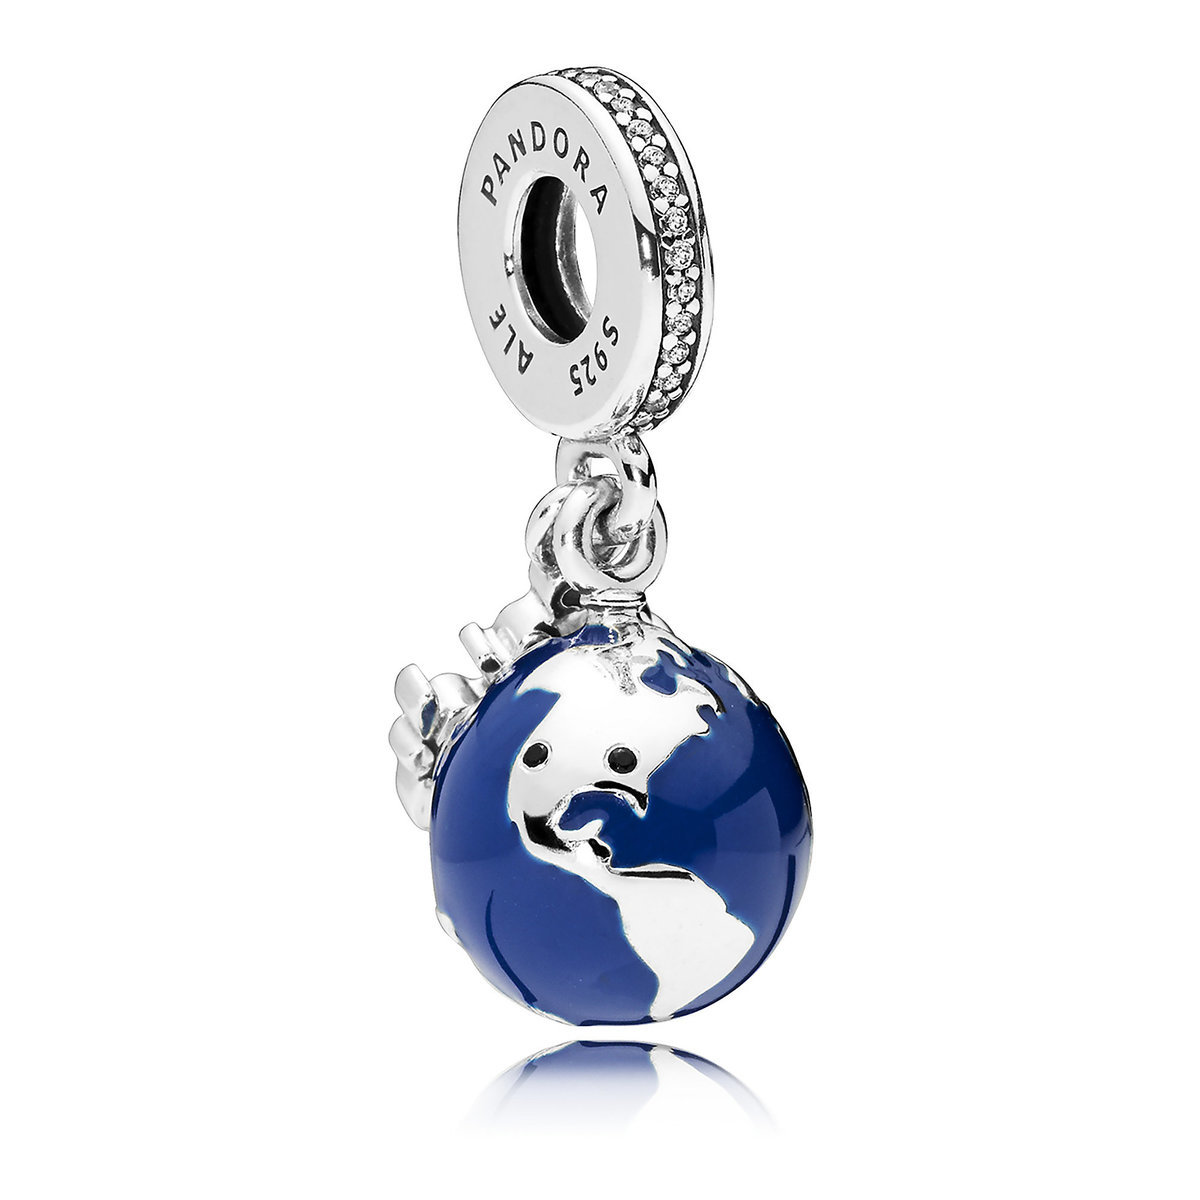 09d3addfe Product Image of Mickey Mouse Globe Charm by Pandora Jewelry # 1